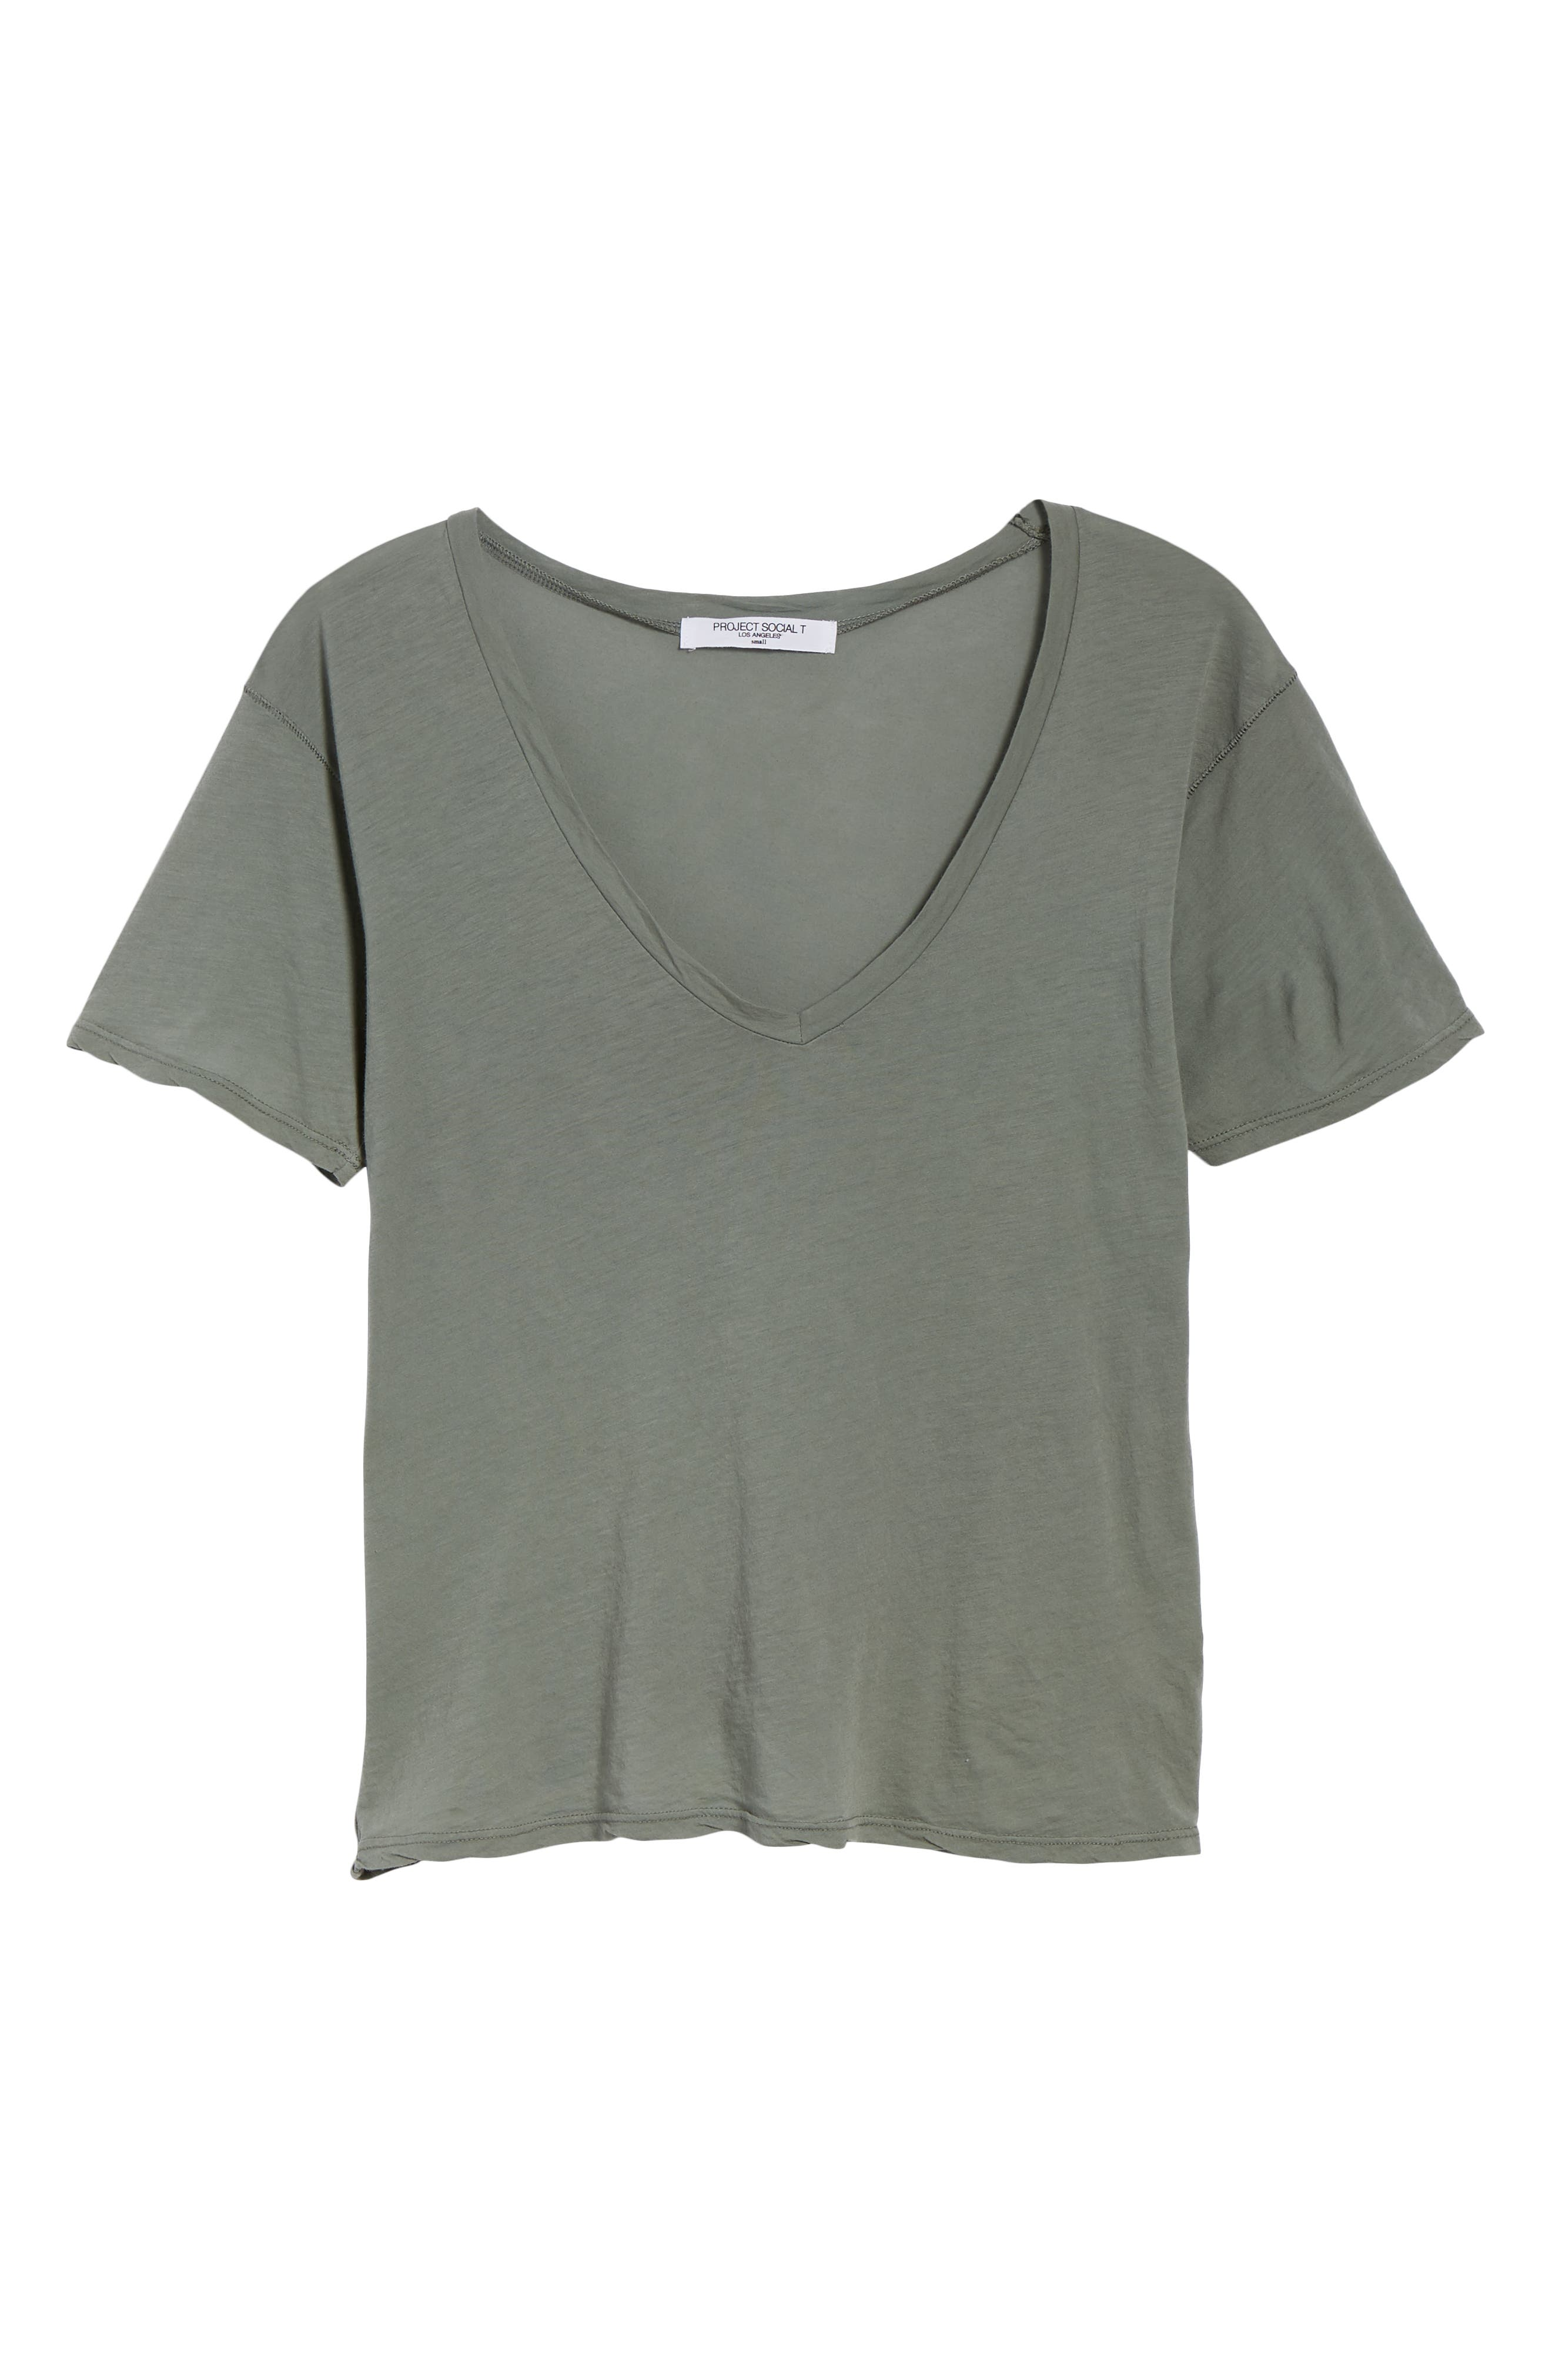 PROJECT SOCIAL T,                             The Softest V-Neck Tee,                             Alternate thumbnail 6, color,                             363